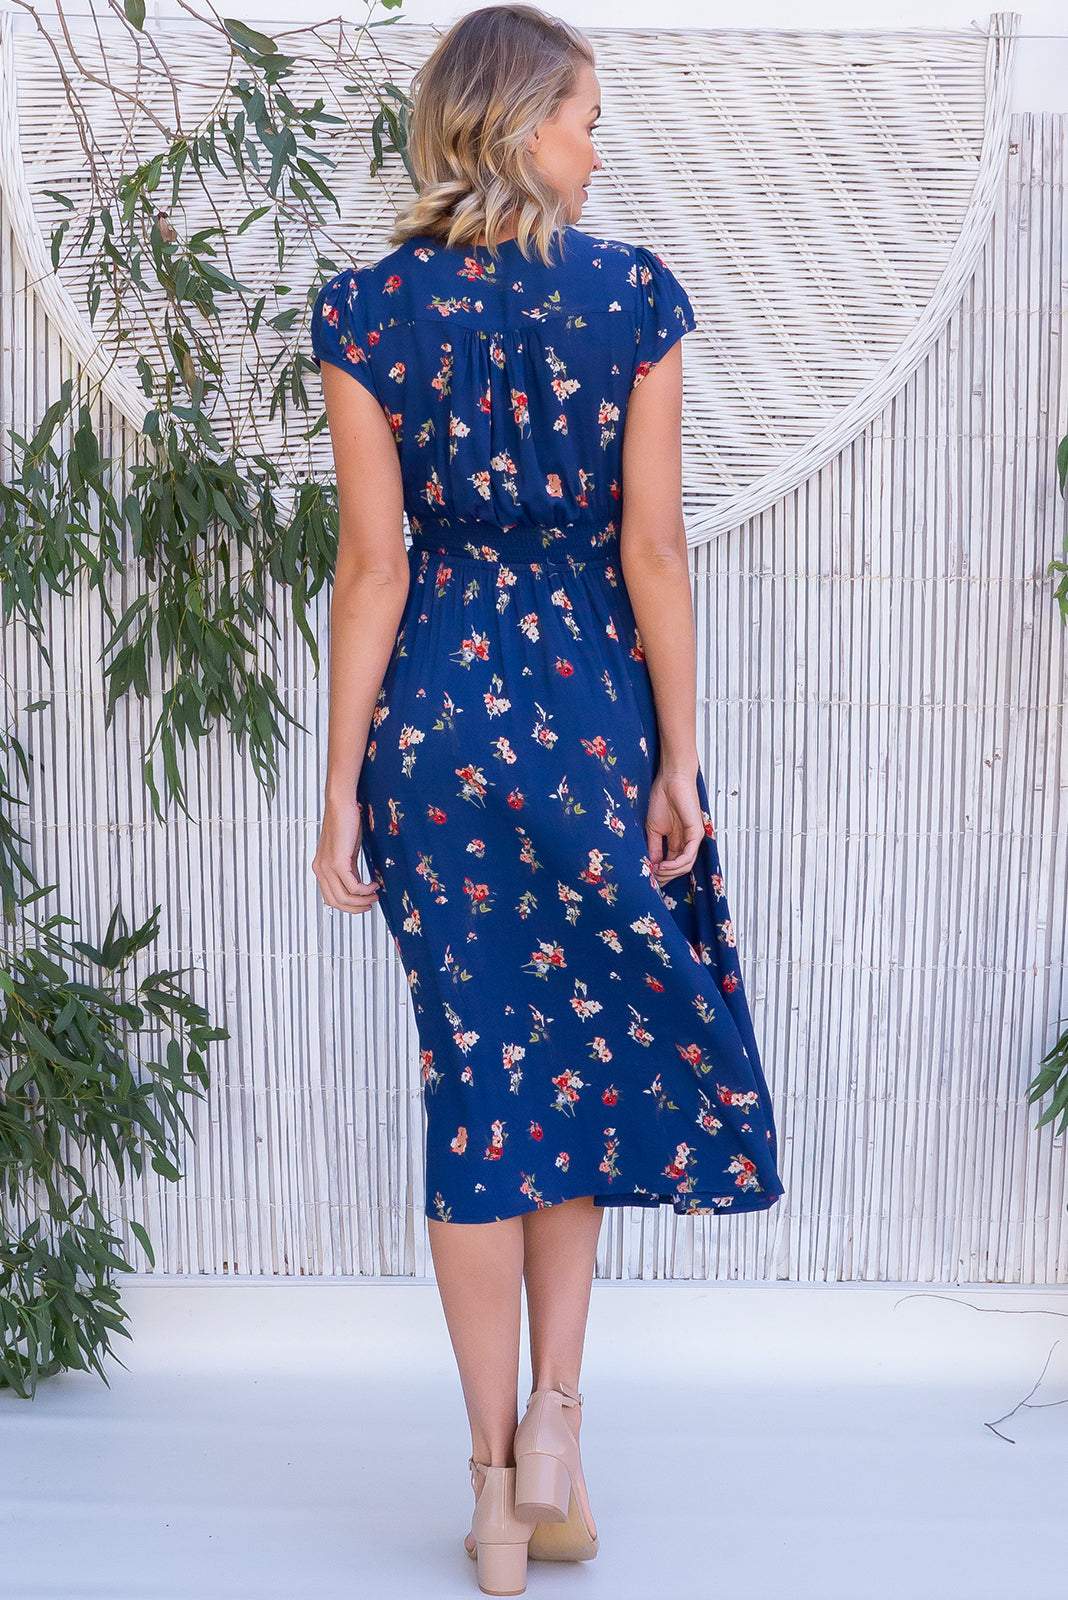 Lizzie Lazuli Blue Dress has waist features elastic shirring at back, deep side pockets, soft sapphire blue base with sprinkles of cream and pink flowers in 100 % woven rayon.